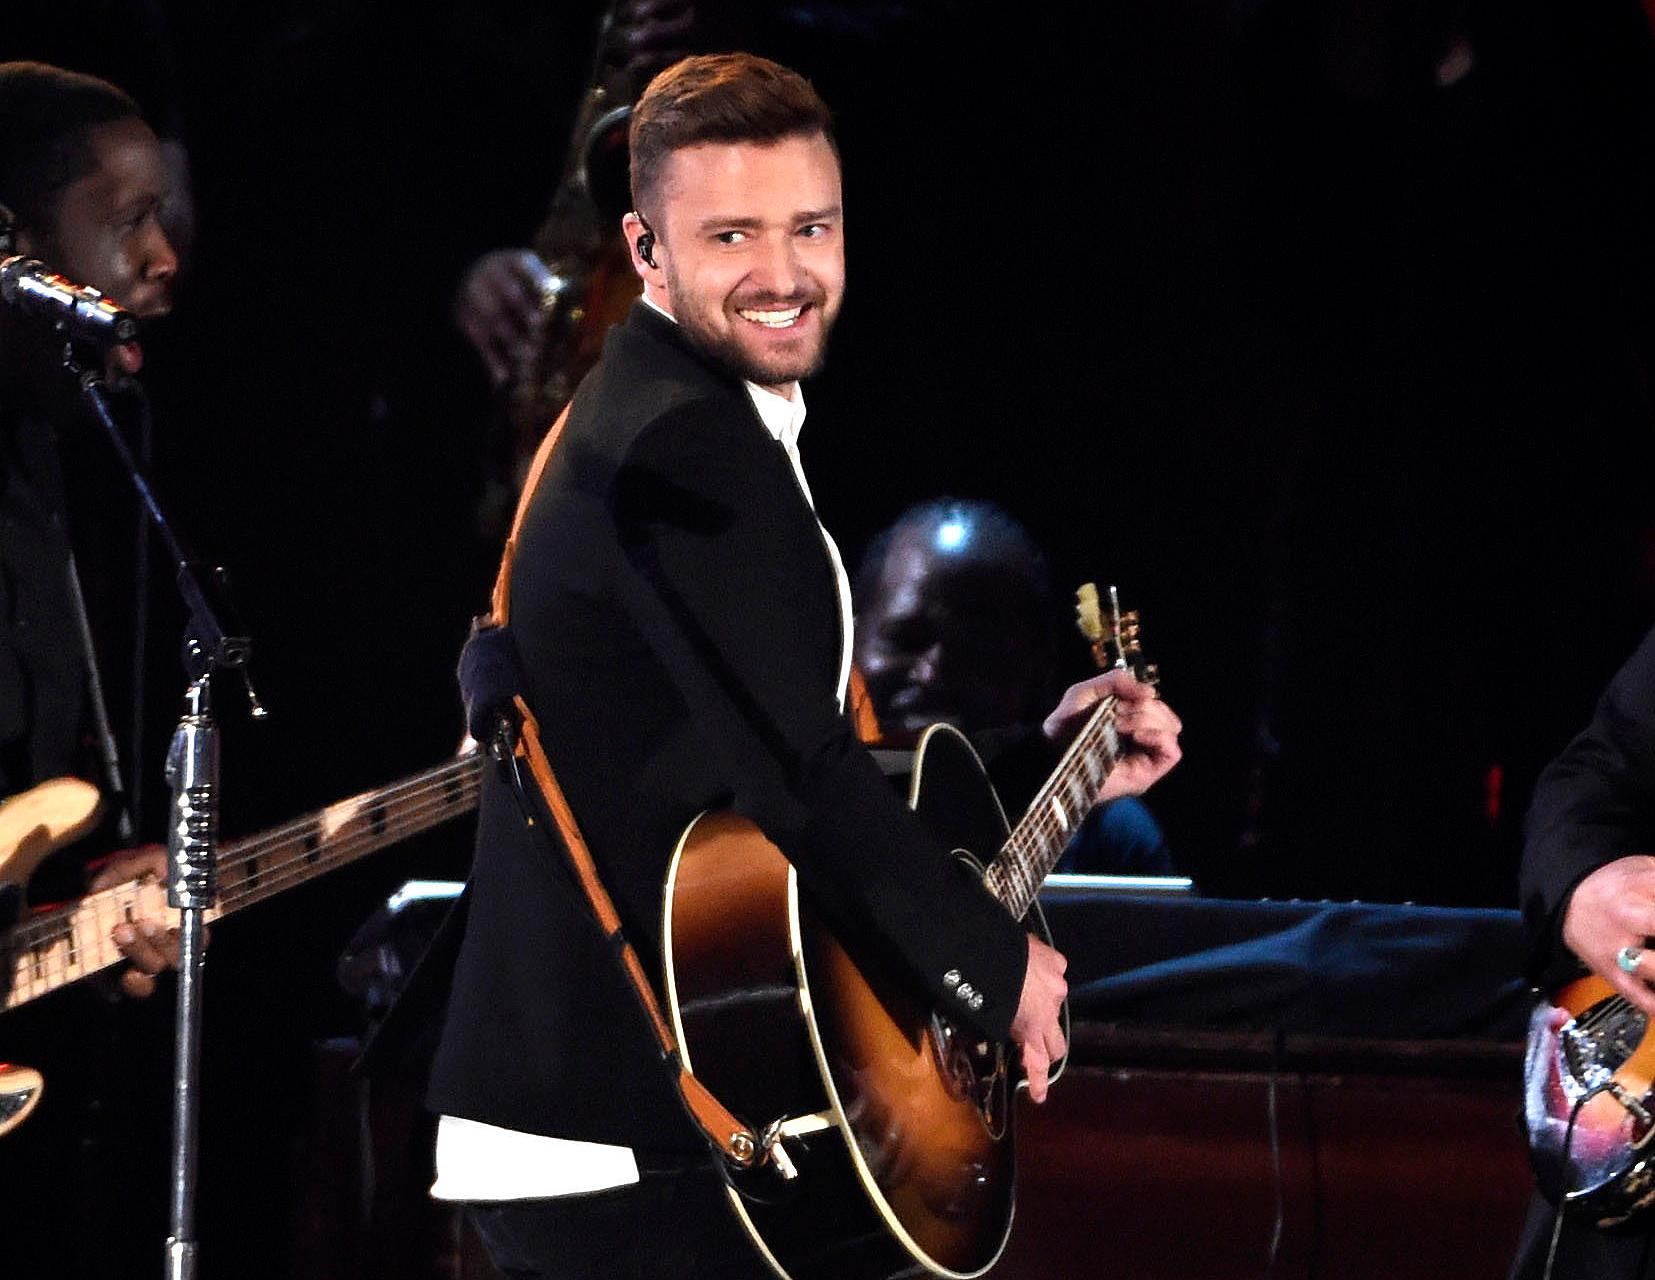 "FILE - In this Nov. 4, 2015 file photo, Justin Timberlake performs at the 49th annual CMA Awards in Nashville, Tenn. A watchdog group is politely pleading with Timberlake to keep his Super Bowl halftime show ""safe for the children watching."" In an open letter to the entertainer issued Tuesday, Jan. 30, 2018, the Parents Television Council hopes there isn't a repeat of what happened in 2004 when Timberlake ripped Janet Jackson's costume to reveal her right breast. (Photo by Chris Pizzello/Invision/AP, File)"